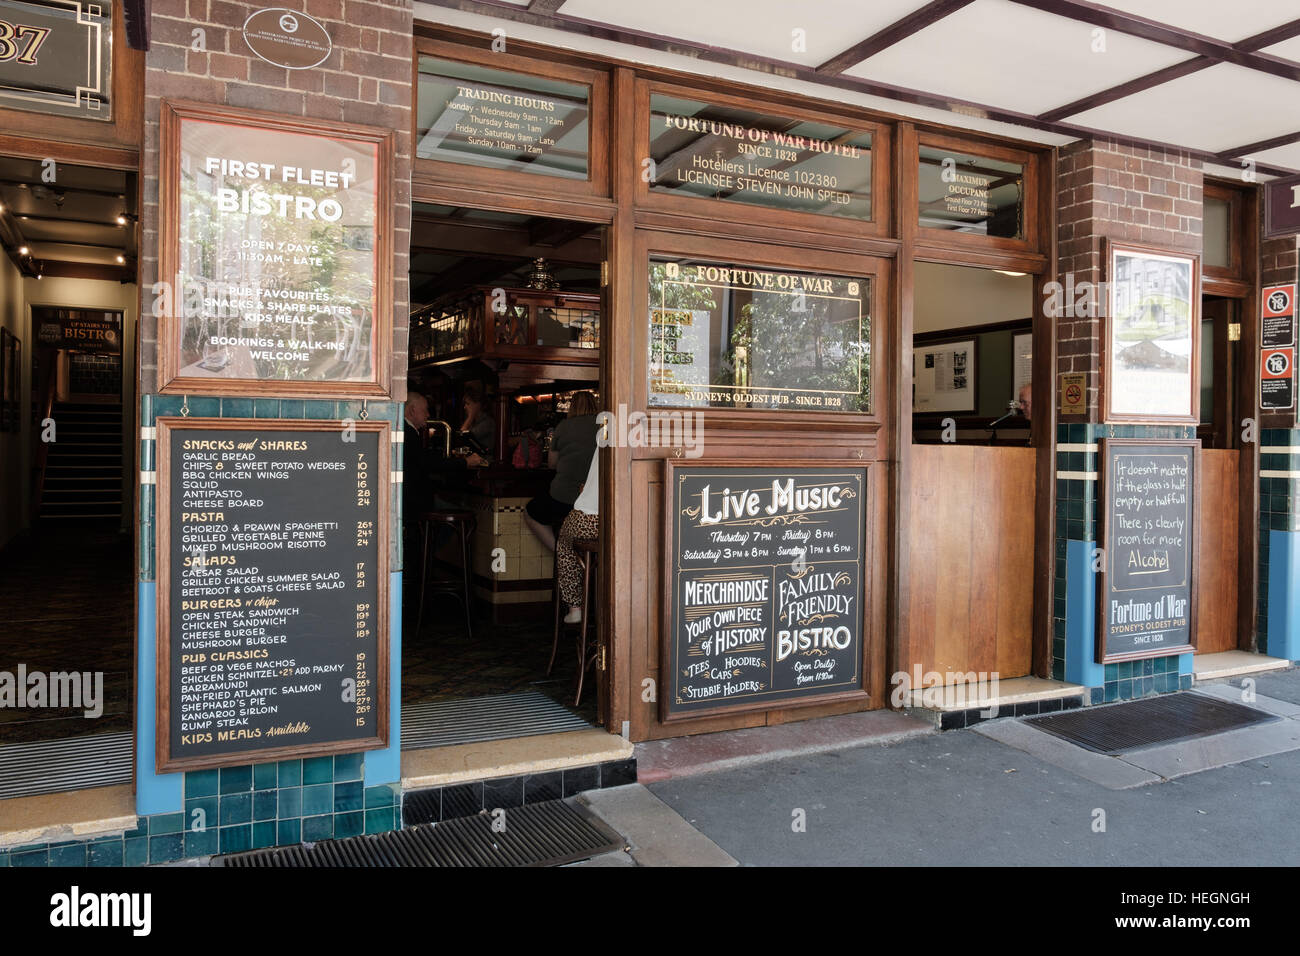 Close view of the Fortune of War pub, the rocks Sydney New South Wales Australia, the Oldest pub in Sydney. - Stock Image